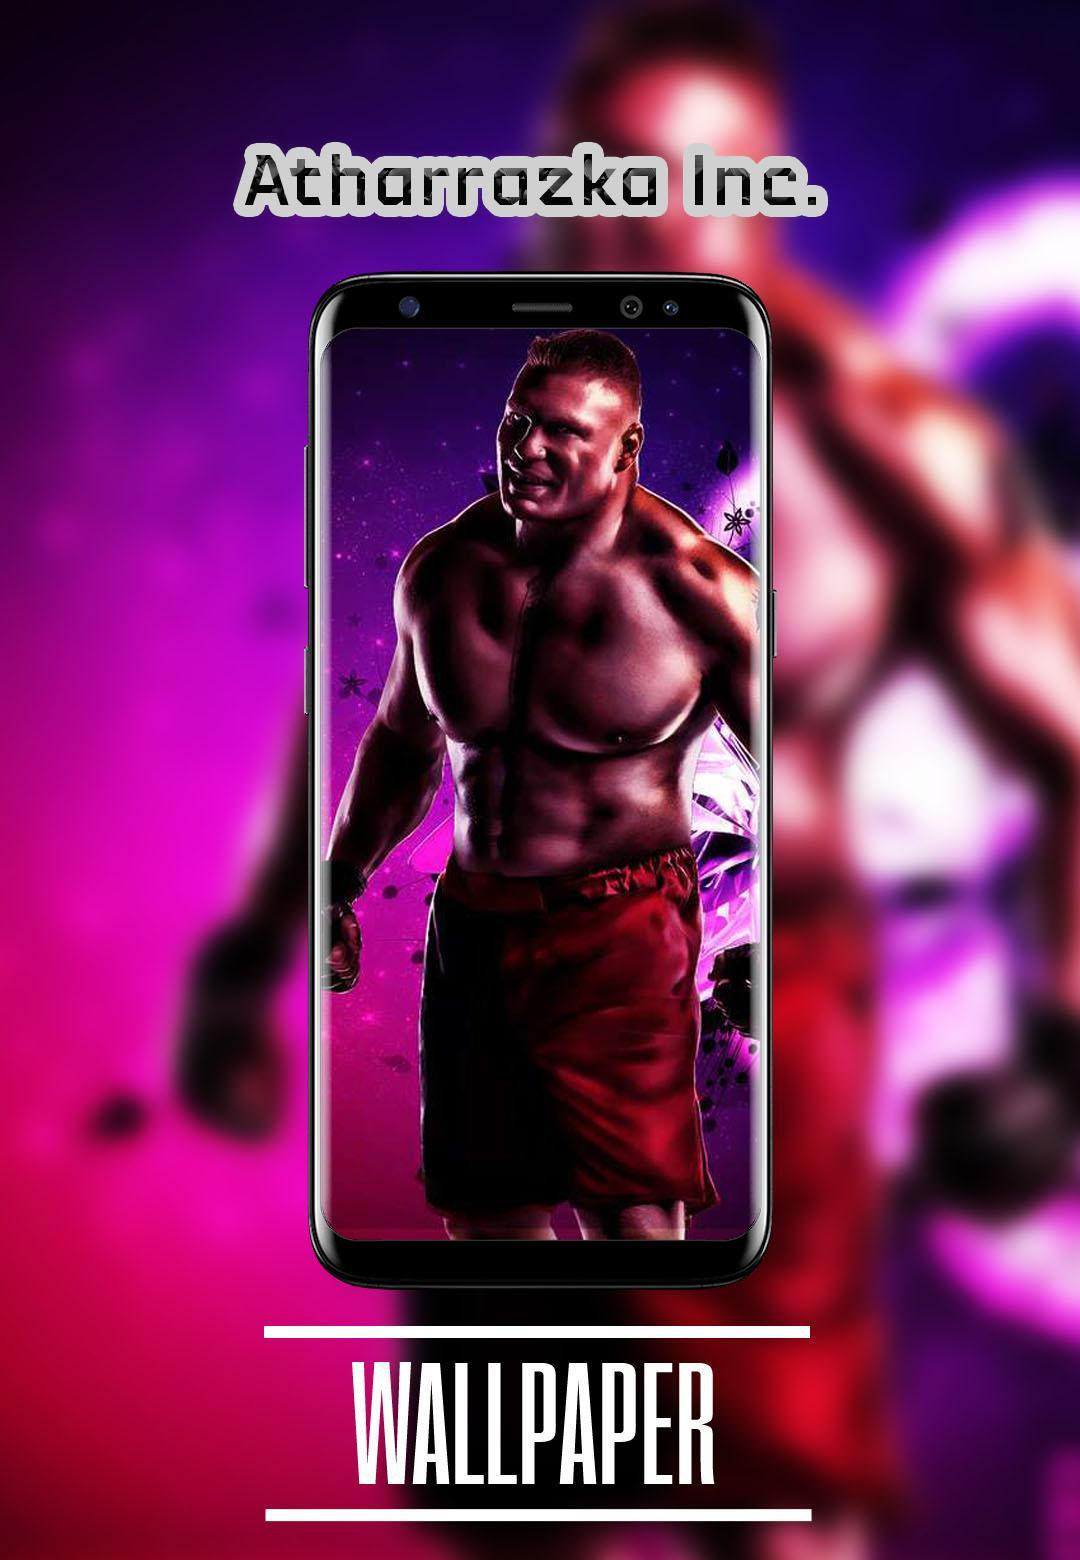 brock lesnar wallpapers hd for android apk download brock lesnar wallpapers hd for android